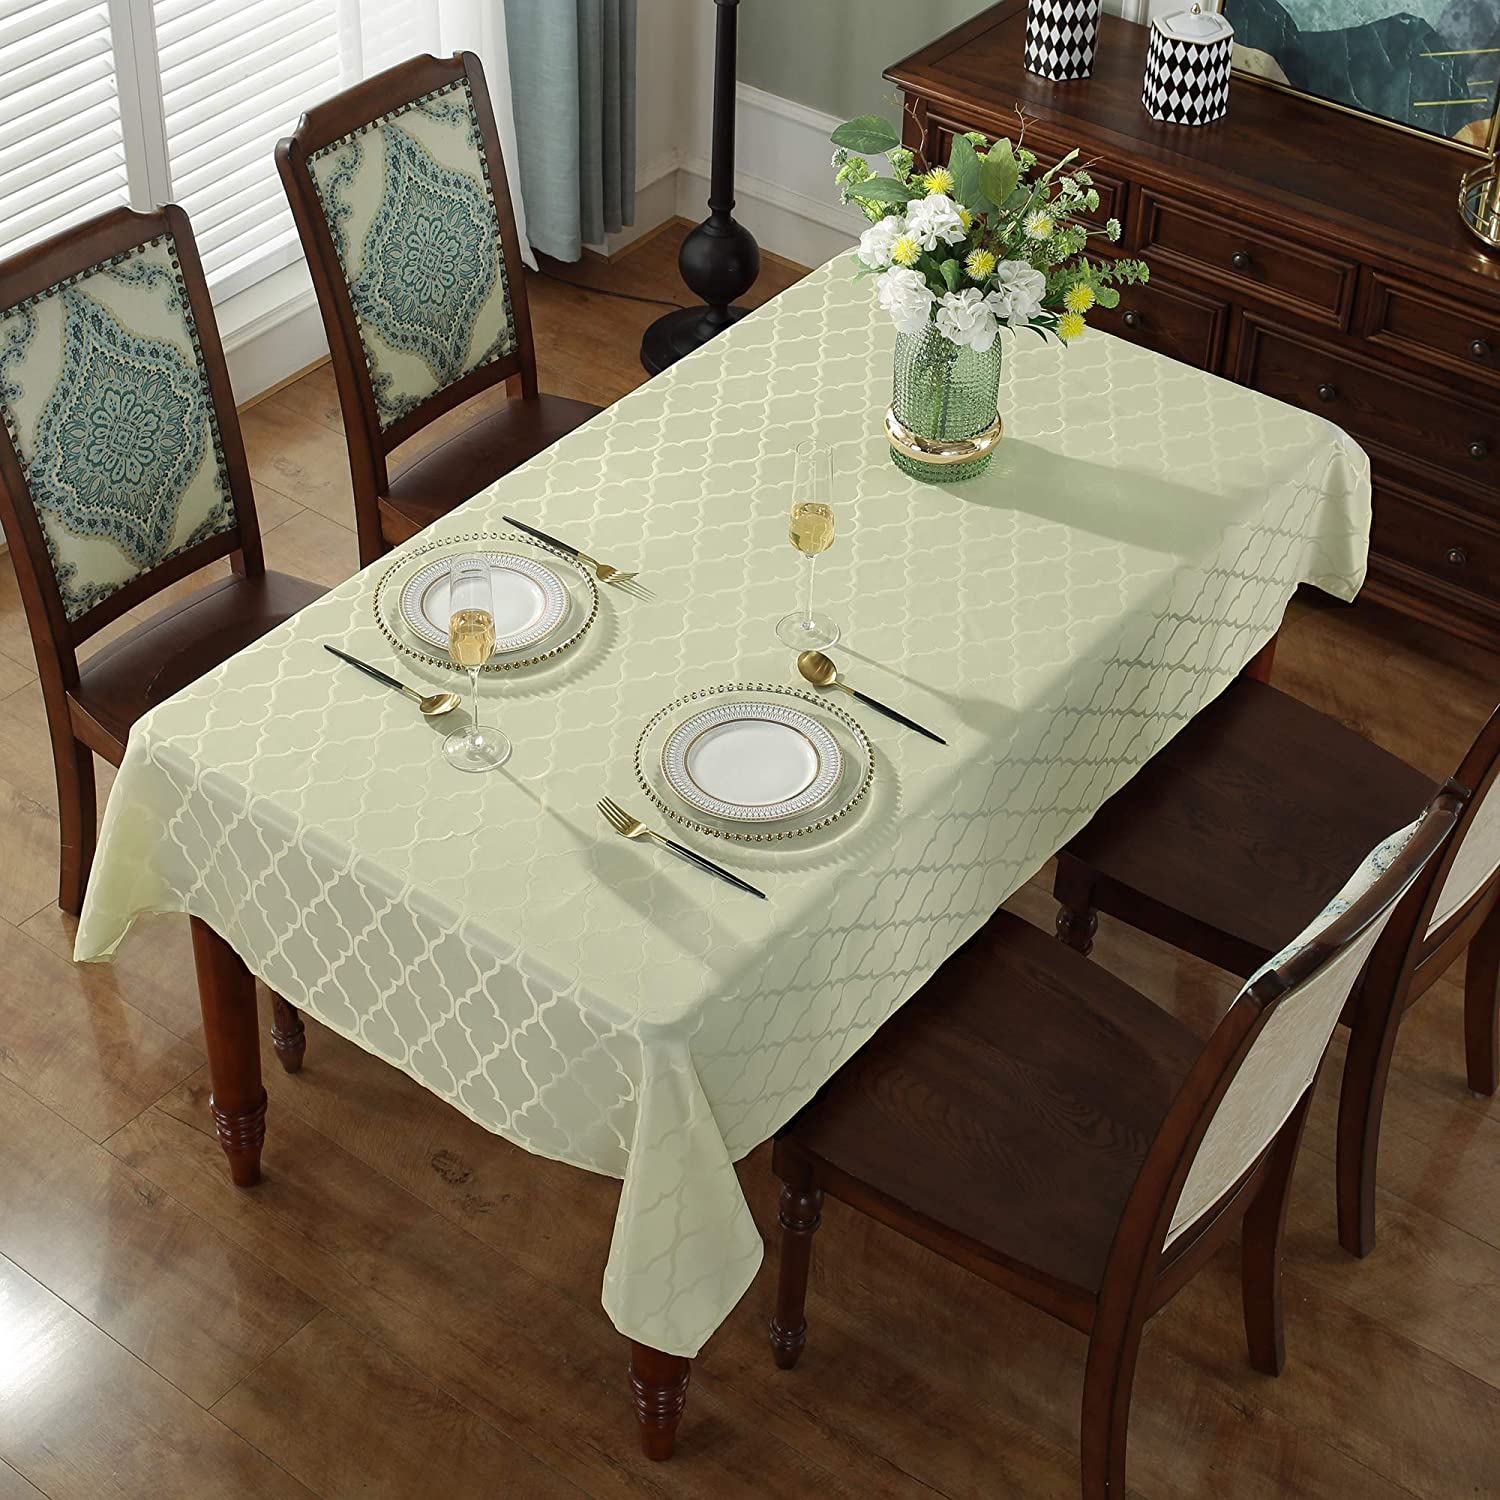 Rectangle//Oblong,132 x 182 , Gold SASTYBALE Jacquard Tablecloth Flower Pattern Polyester Table Cloth Spill Proof Wrinkle Resistant Soft Table Cover for Kitchen Dinning Tabletop Decoration 4-6 Seats